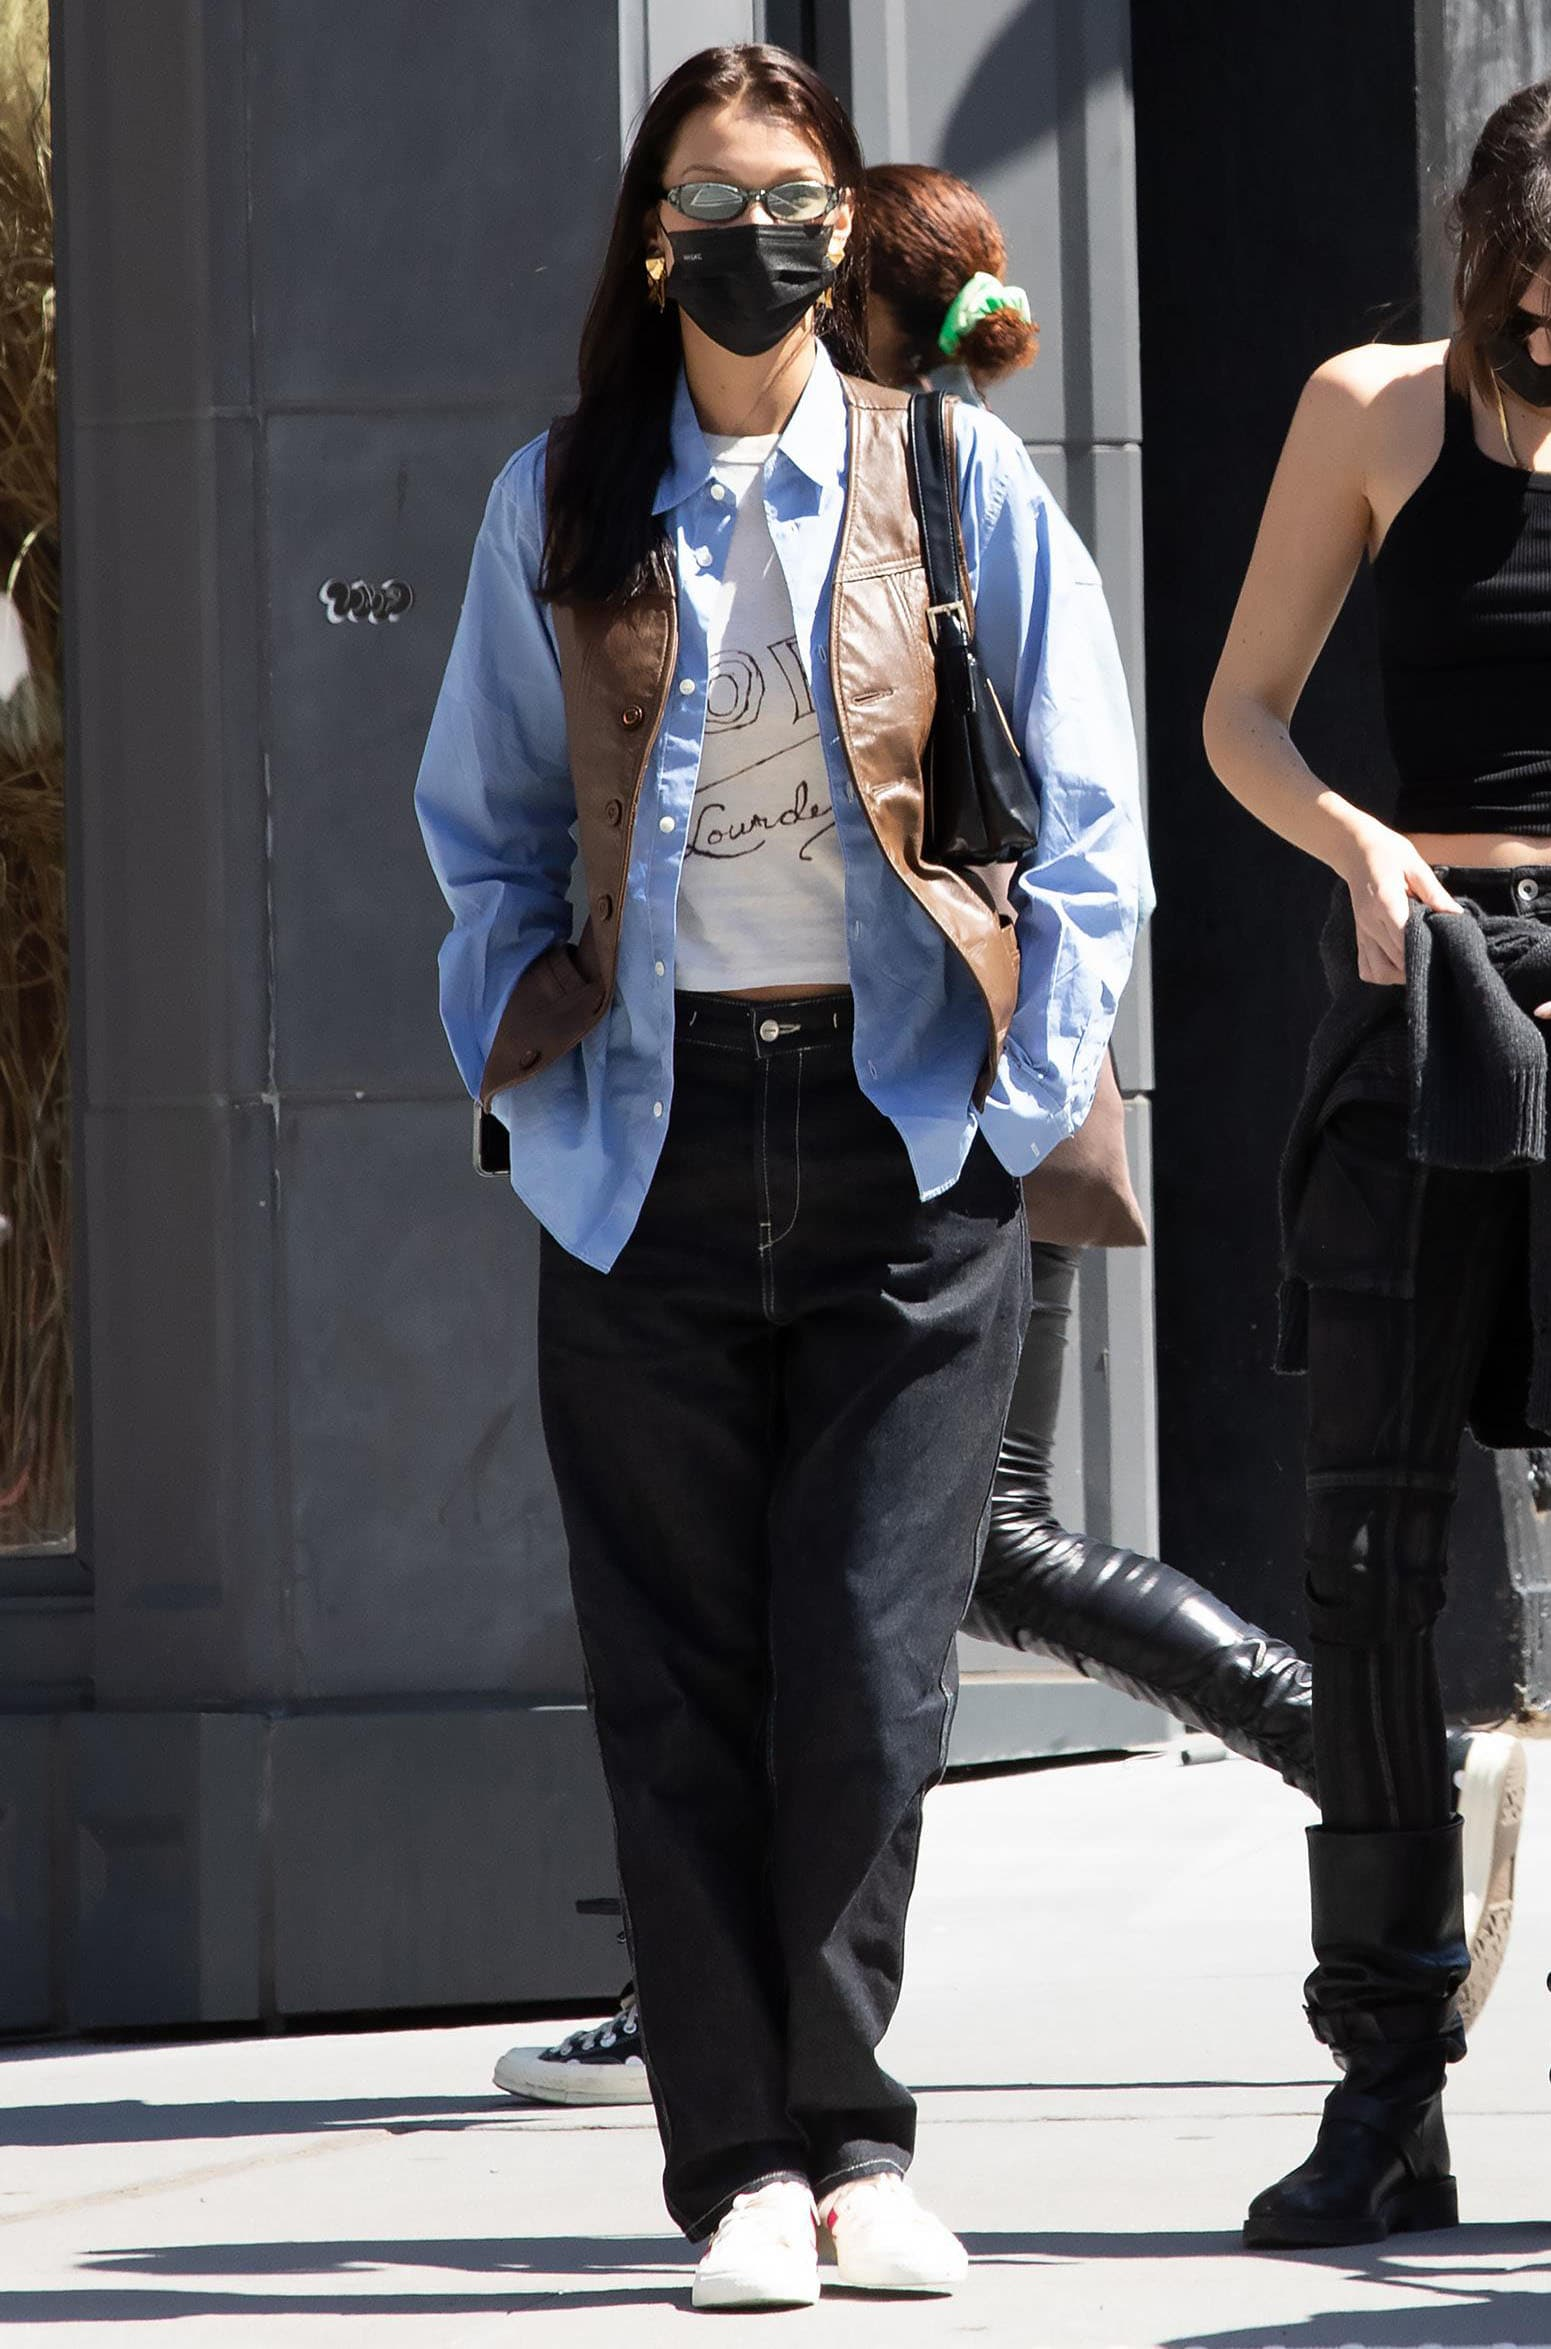 Bella Hadid goes the '90s route in crop tee and baggy jeans layered with a brown leather vest and blue button-down shirt